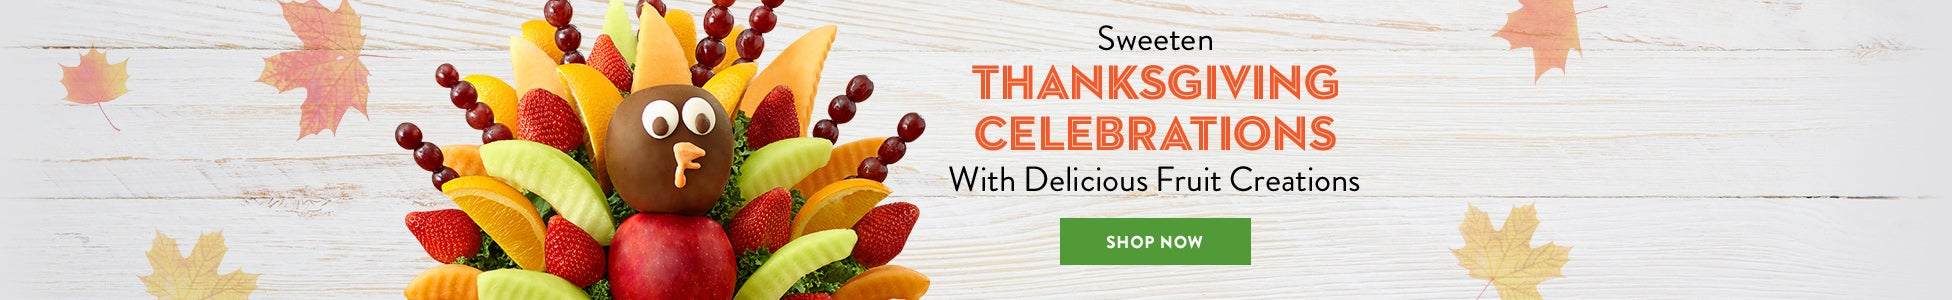 Sweeten Thanksgiving Celebrations With Delicious Fruit Creations